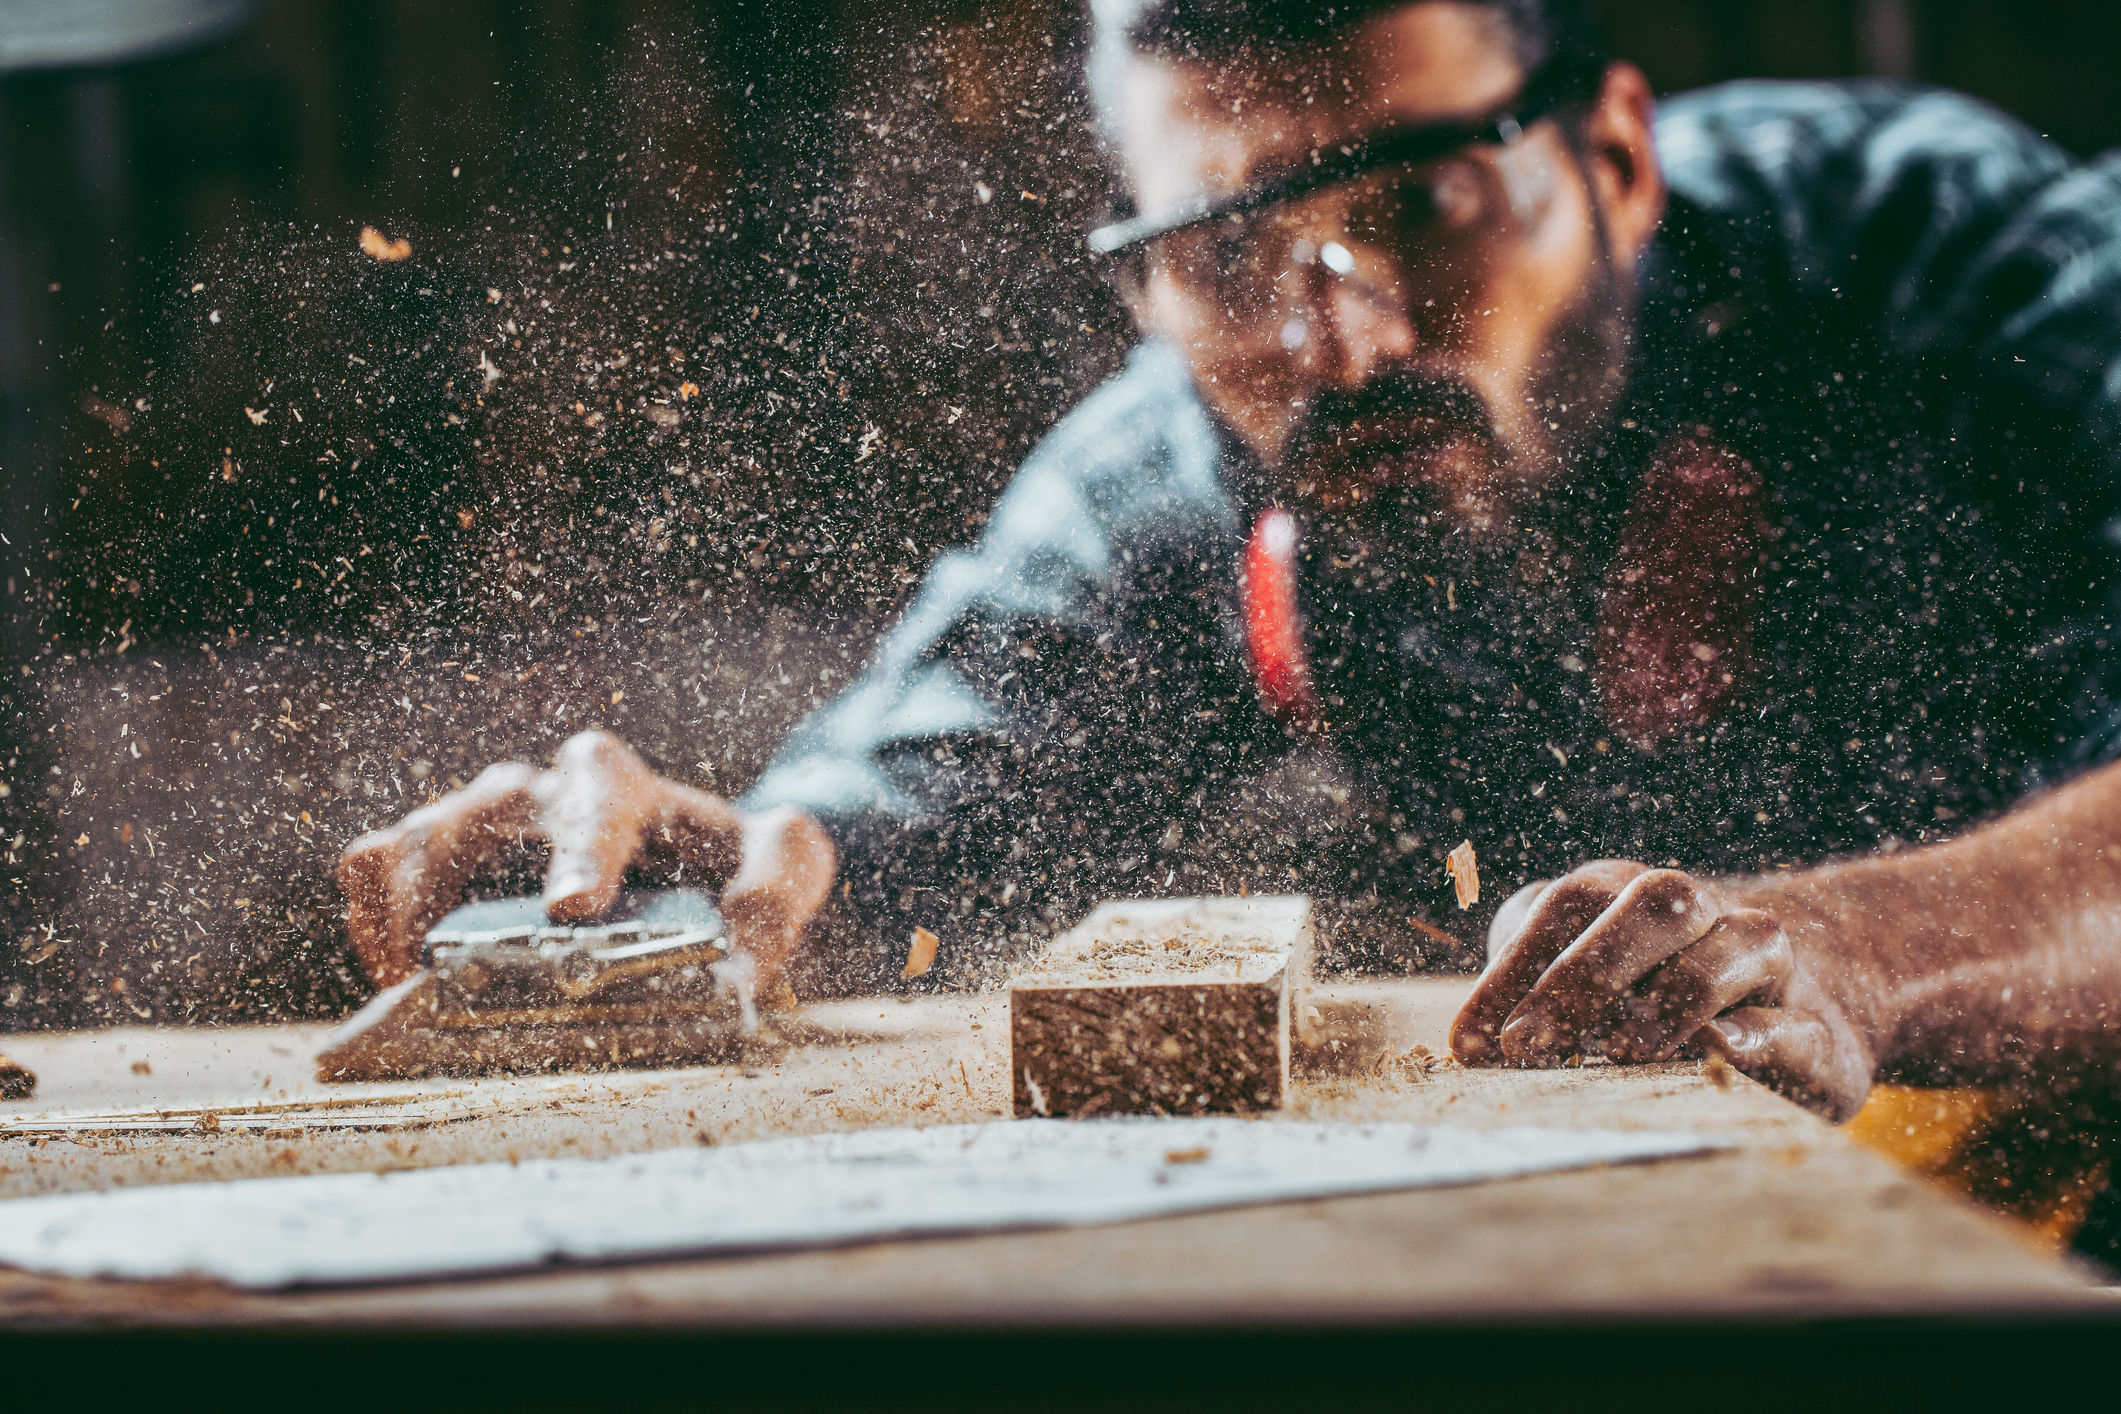 A woodworker wearing safety glasses sands down plywood sheet with sawdust filling the air in front of him